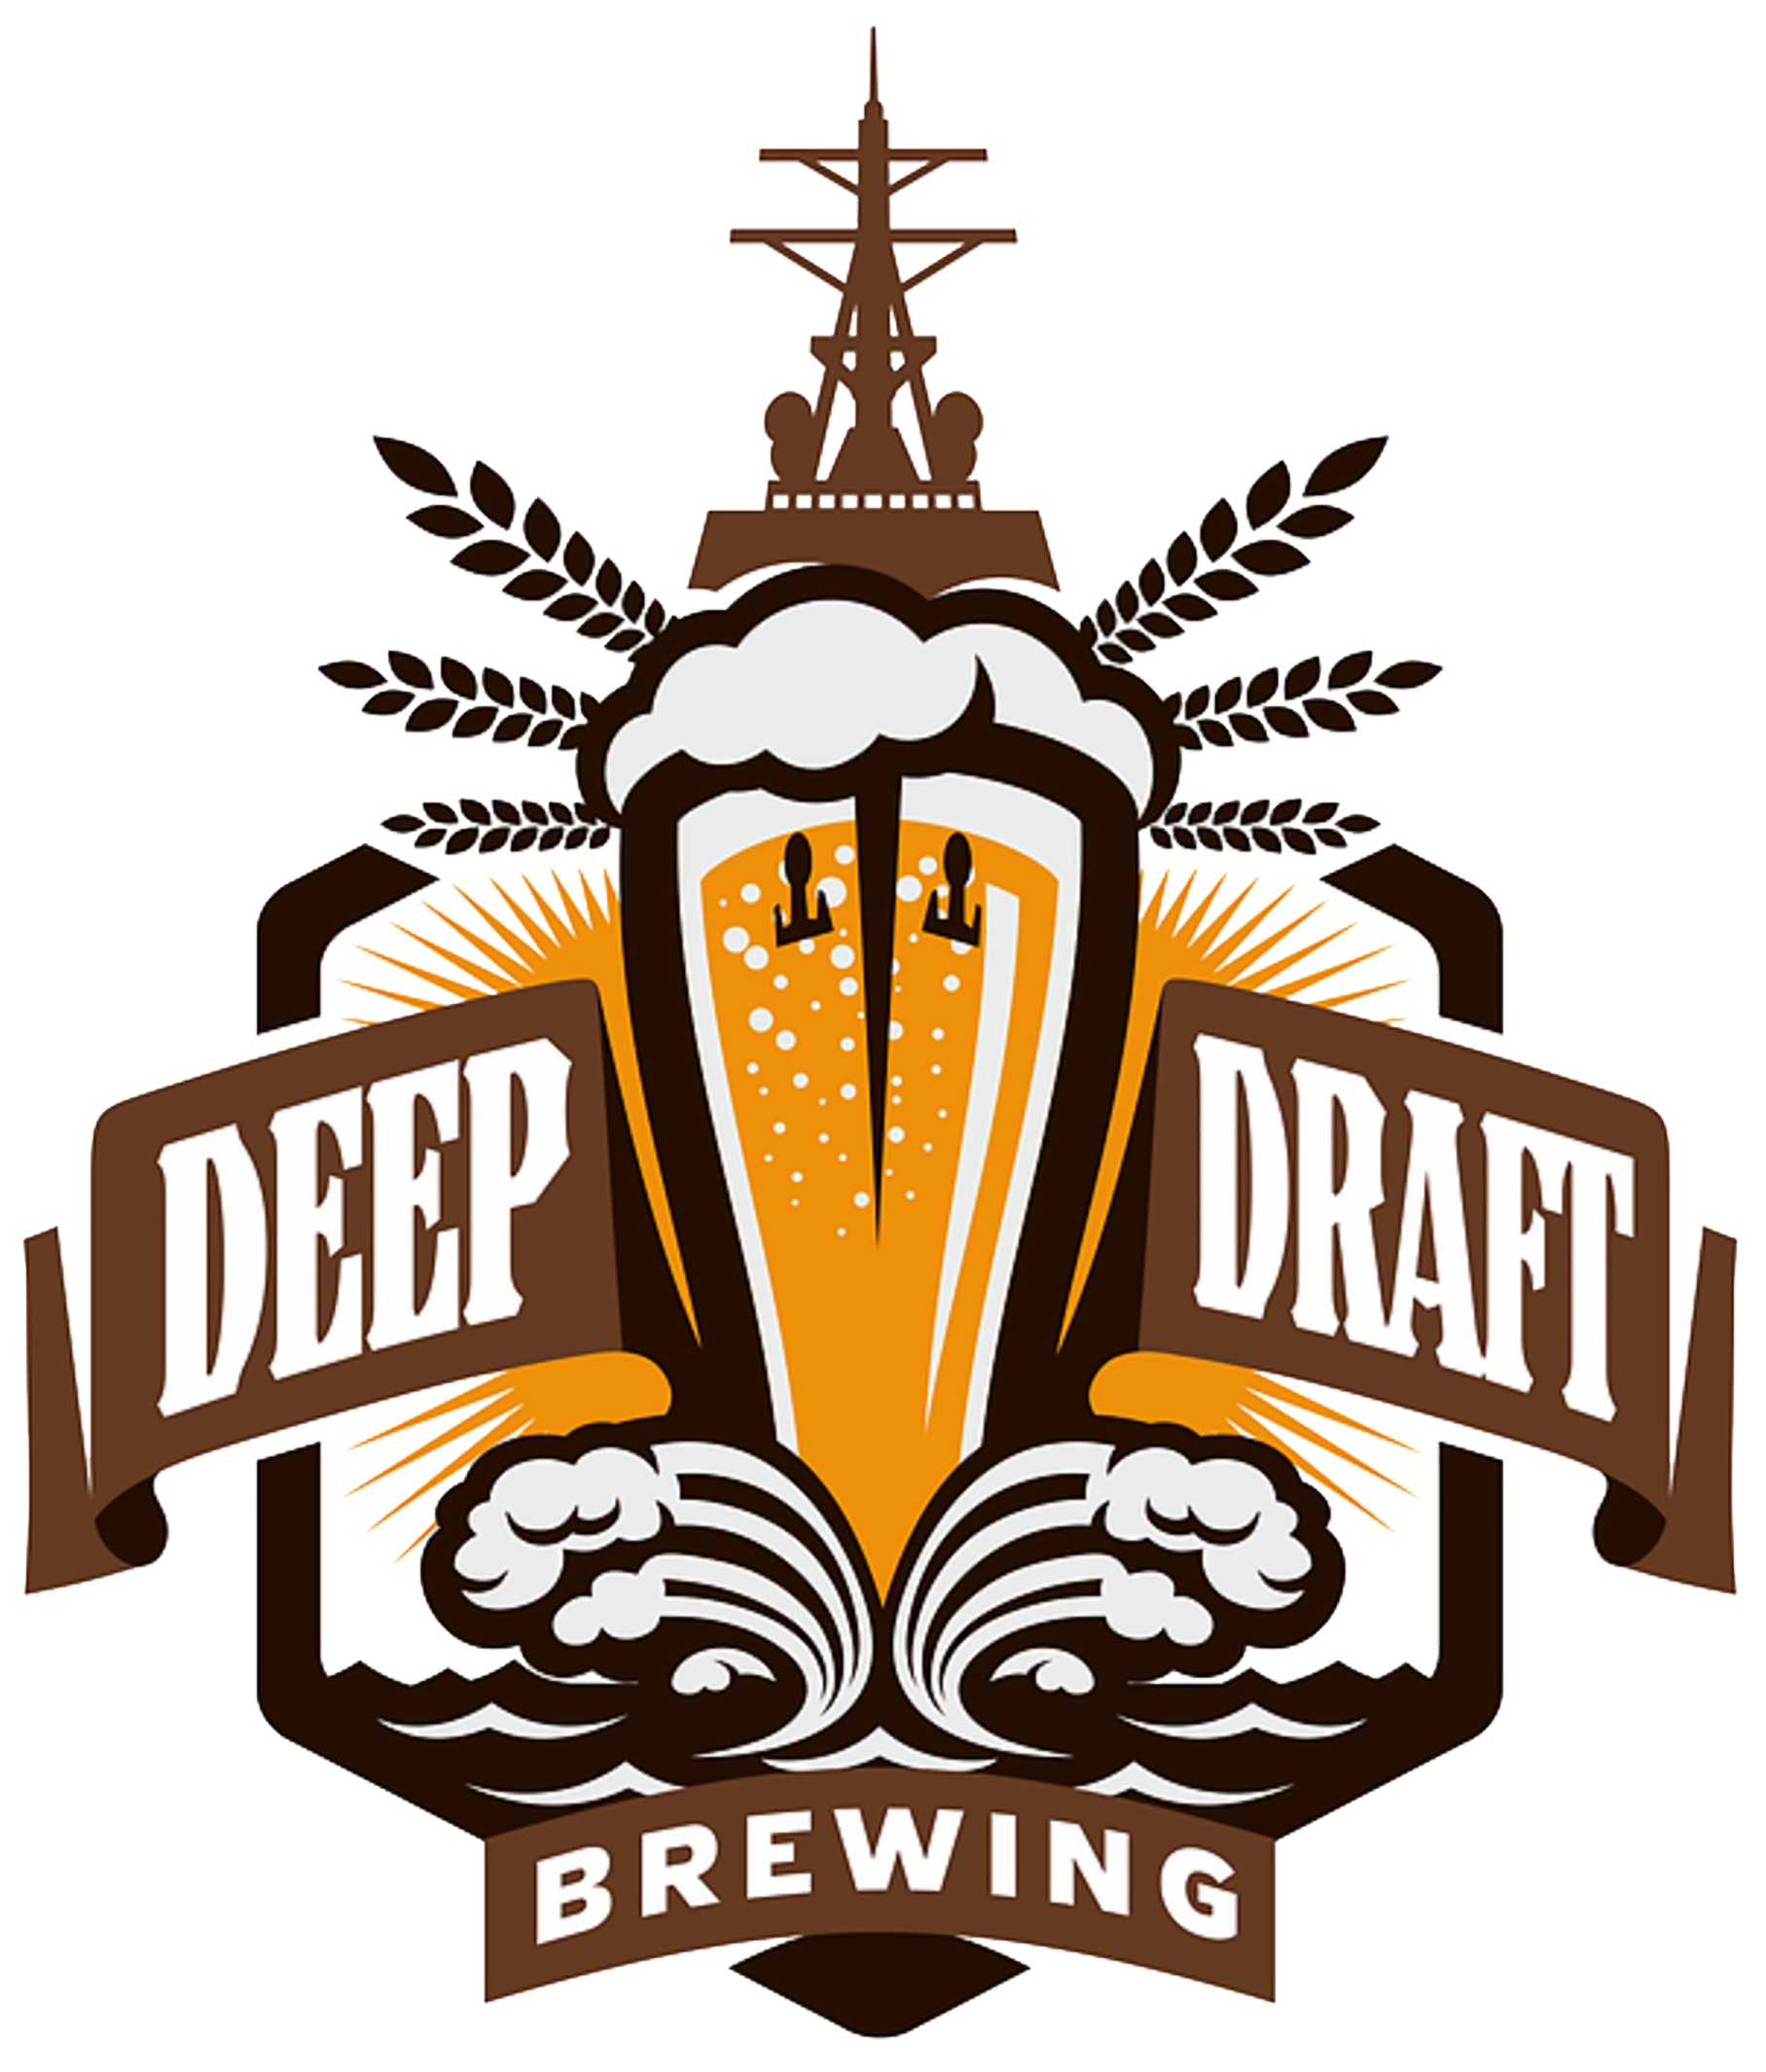 Deep Draft Brewing